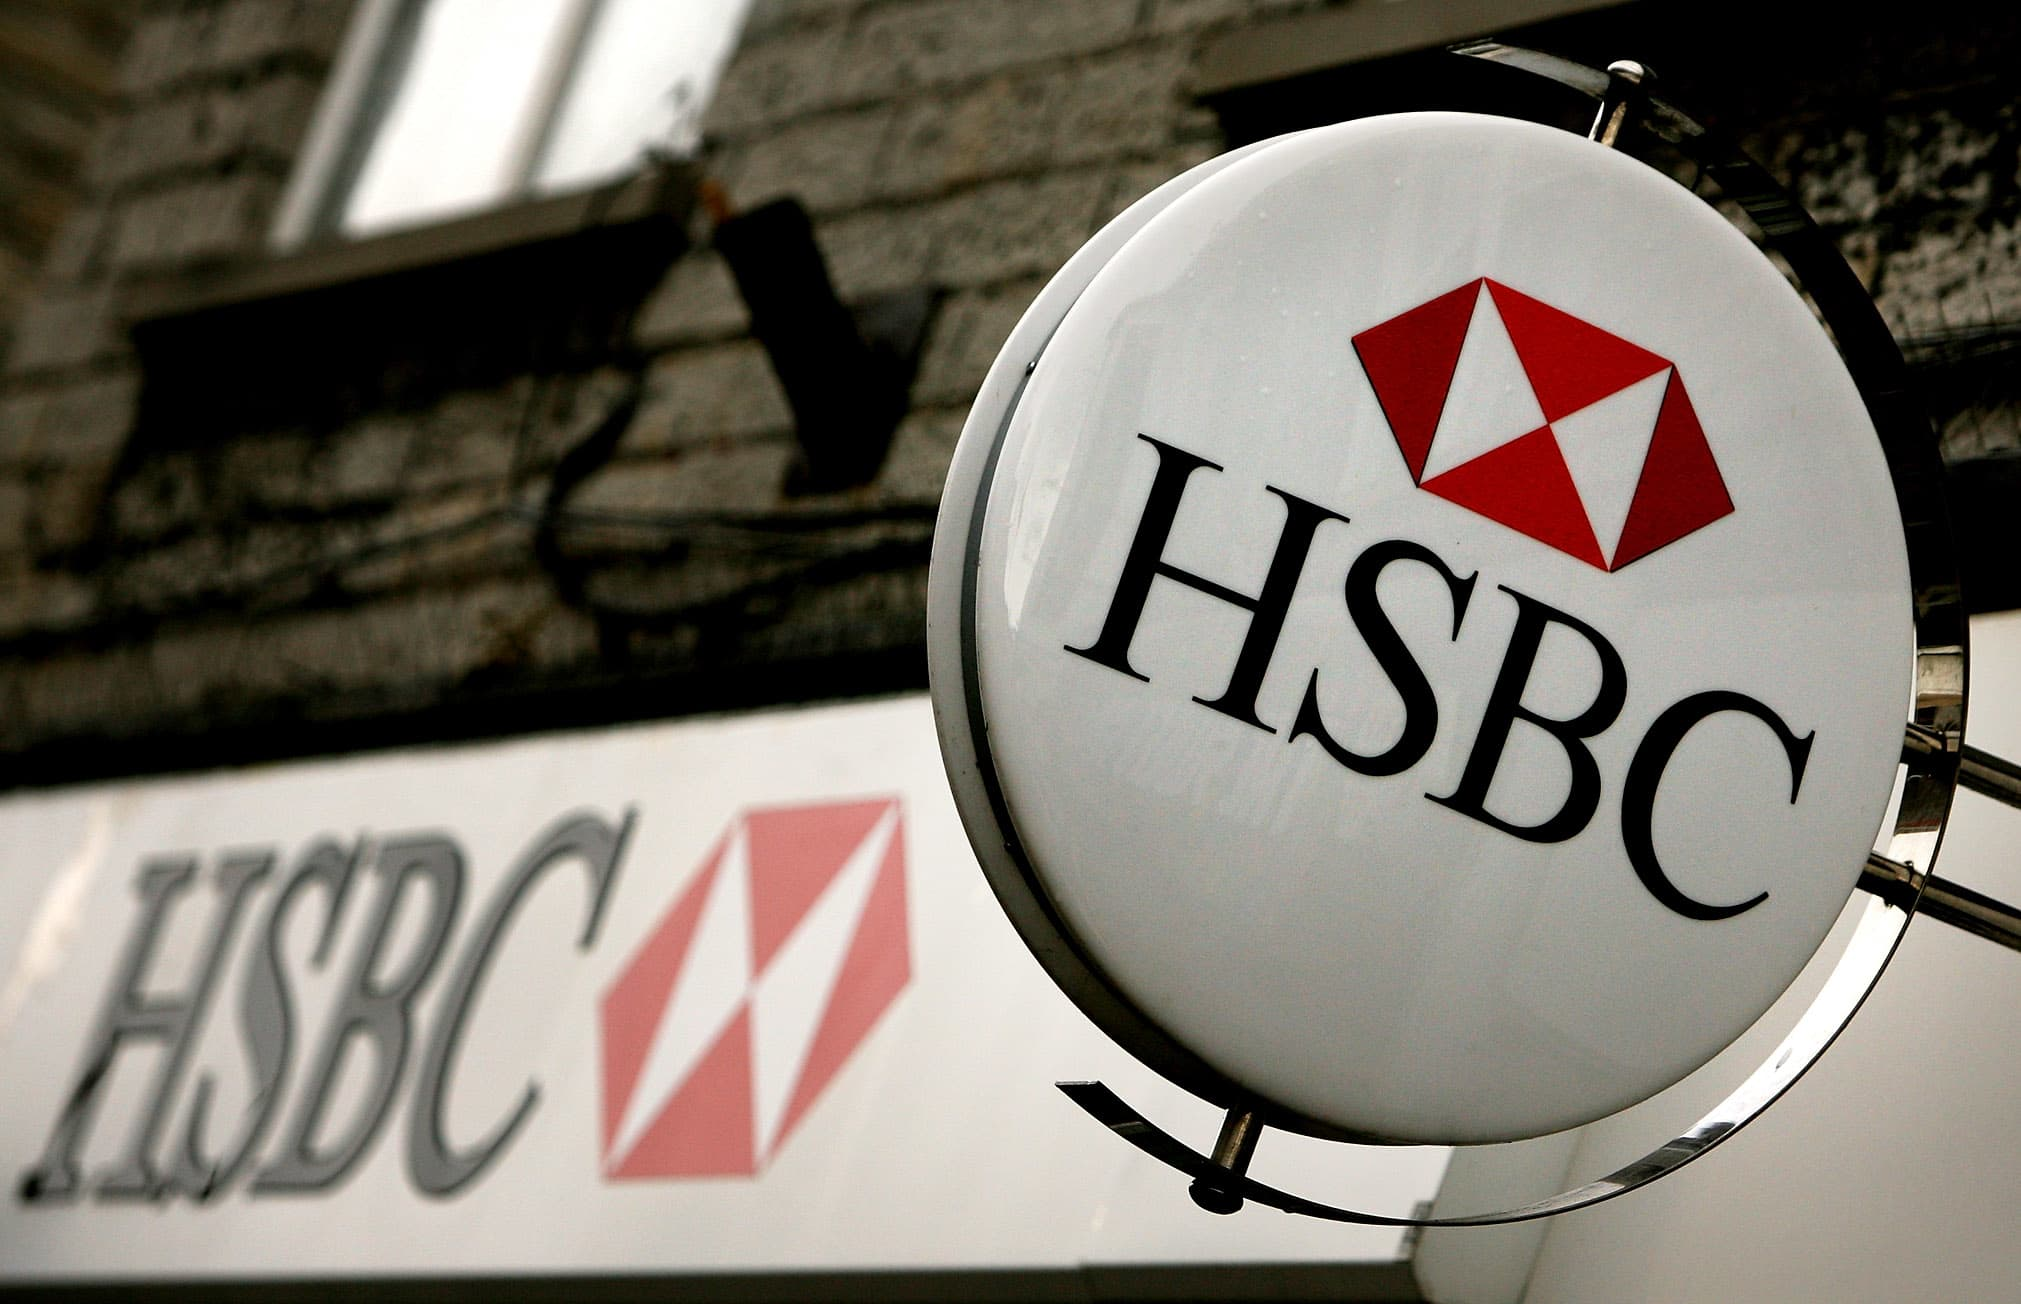 HSBC reports fourth-quarter, full-year 2018 earnings